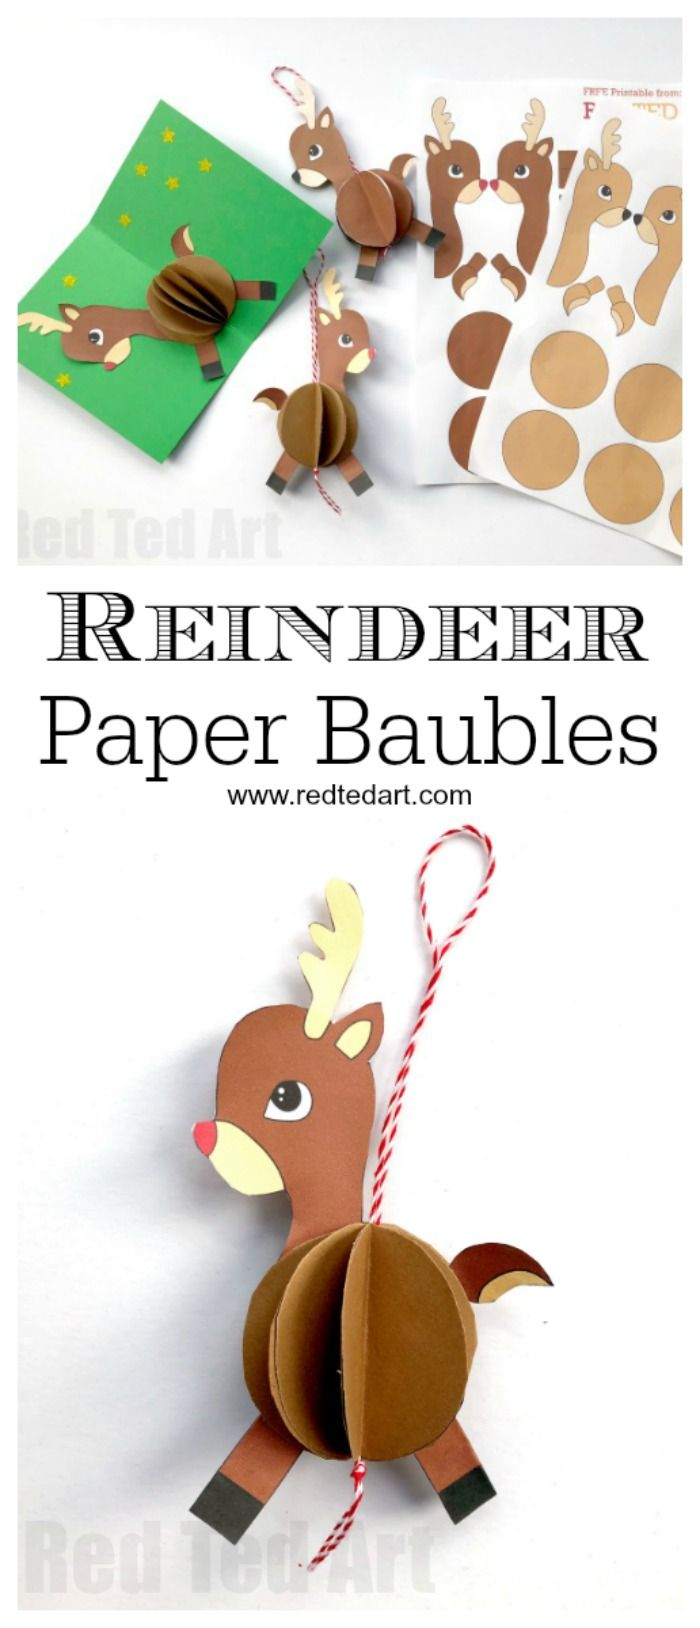 Paper Reindeer Ornament. How cute are these easy Reindeer Baubles? Super fun and easy to make. Choose from different colours.. and turn them into Paper Ornaments or Pop Up Christmas Cards! Adorable. #Reindeer #Christmas #Reindeerornament #ornament #diy #printables #baubles